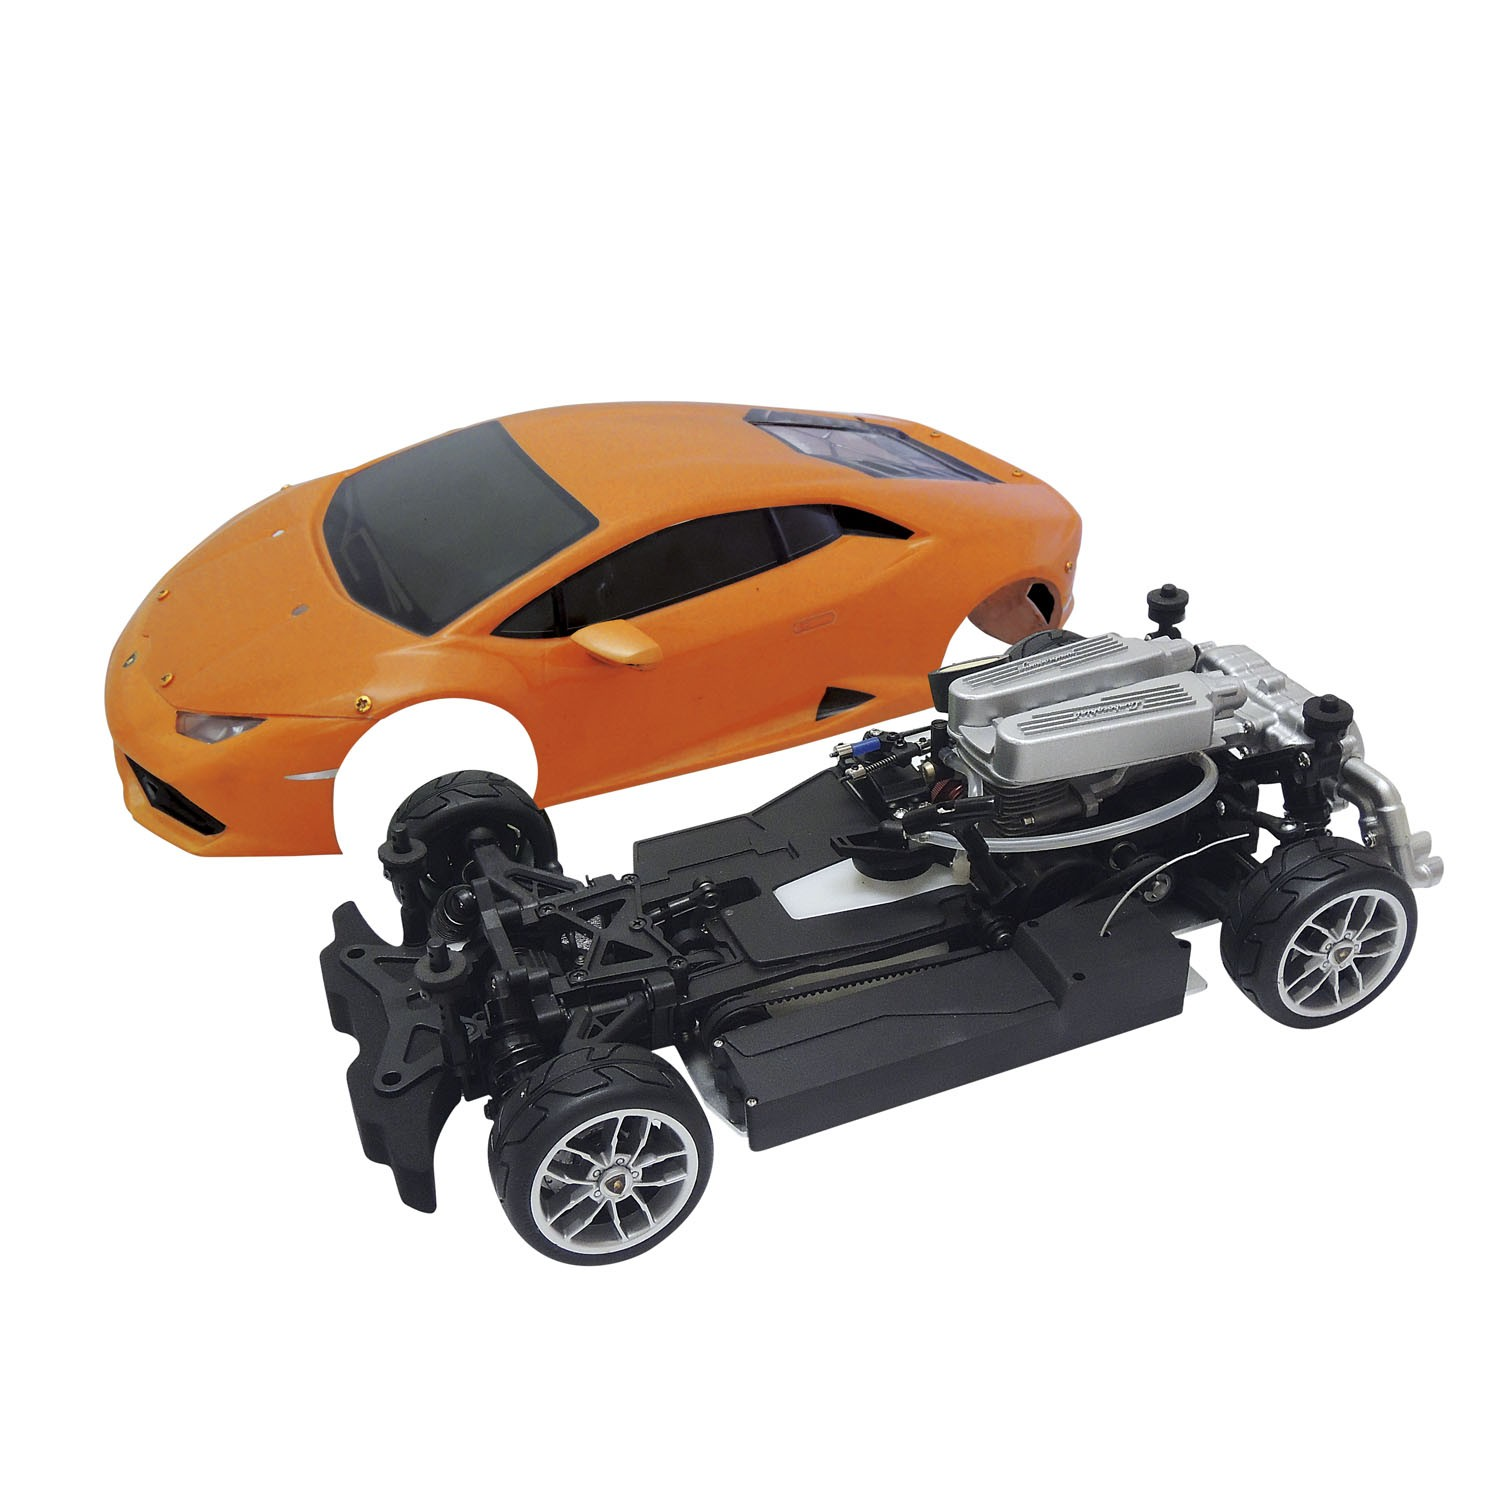 rc car kits to build with Build The Lamborghini Huracan on Build Senna Mclaren Mp4 4 additionally Build The Lamborghini Huracan in addition Build Ford Mustang Shelby besides dirtmodeler additionally Build The Senna Mclaren.